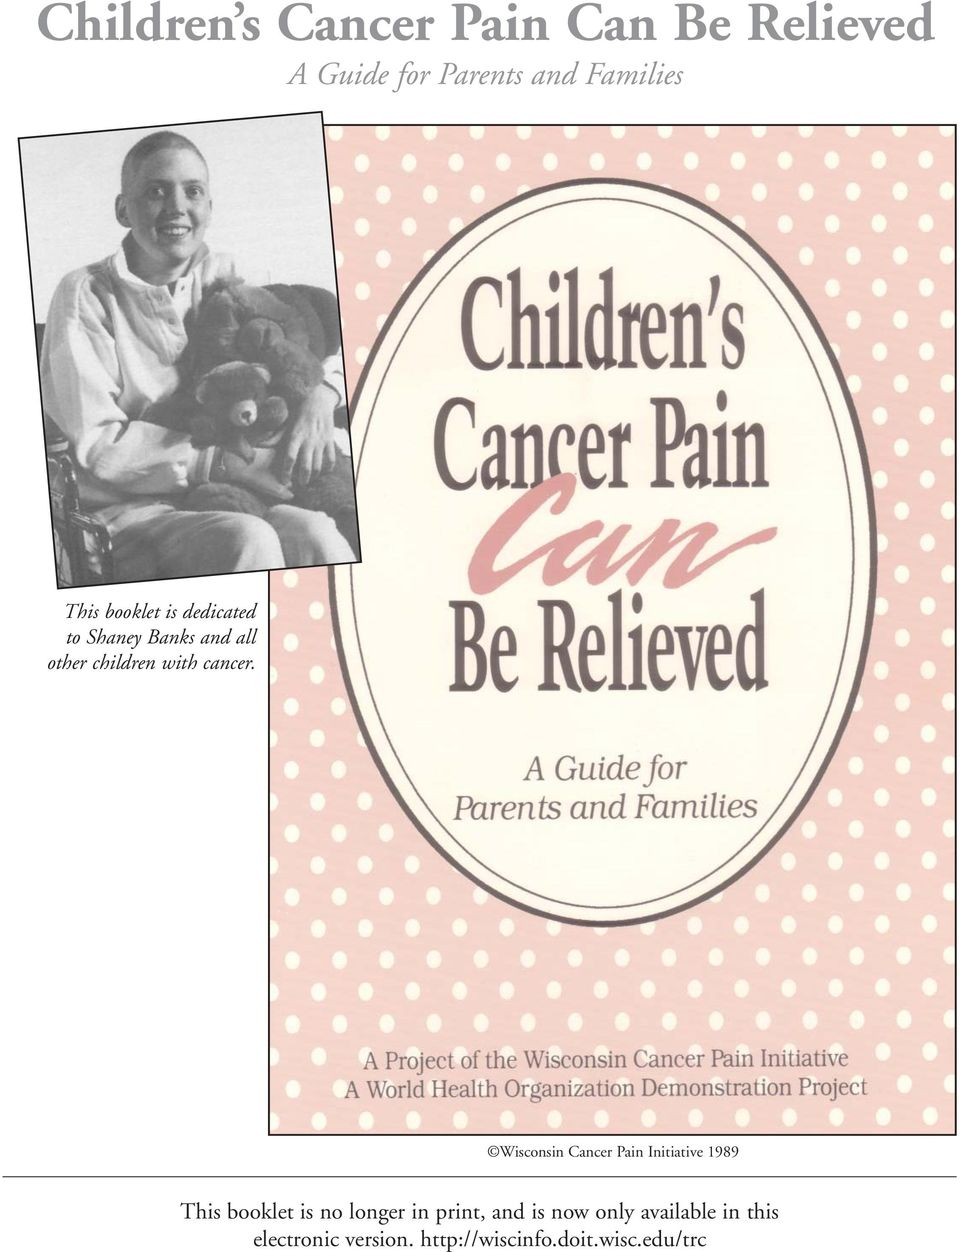 Wisconsin Cancer Pain Initiative 1989 This booklet is no longer in print, and